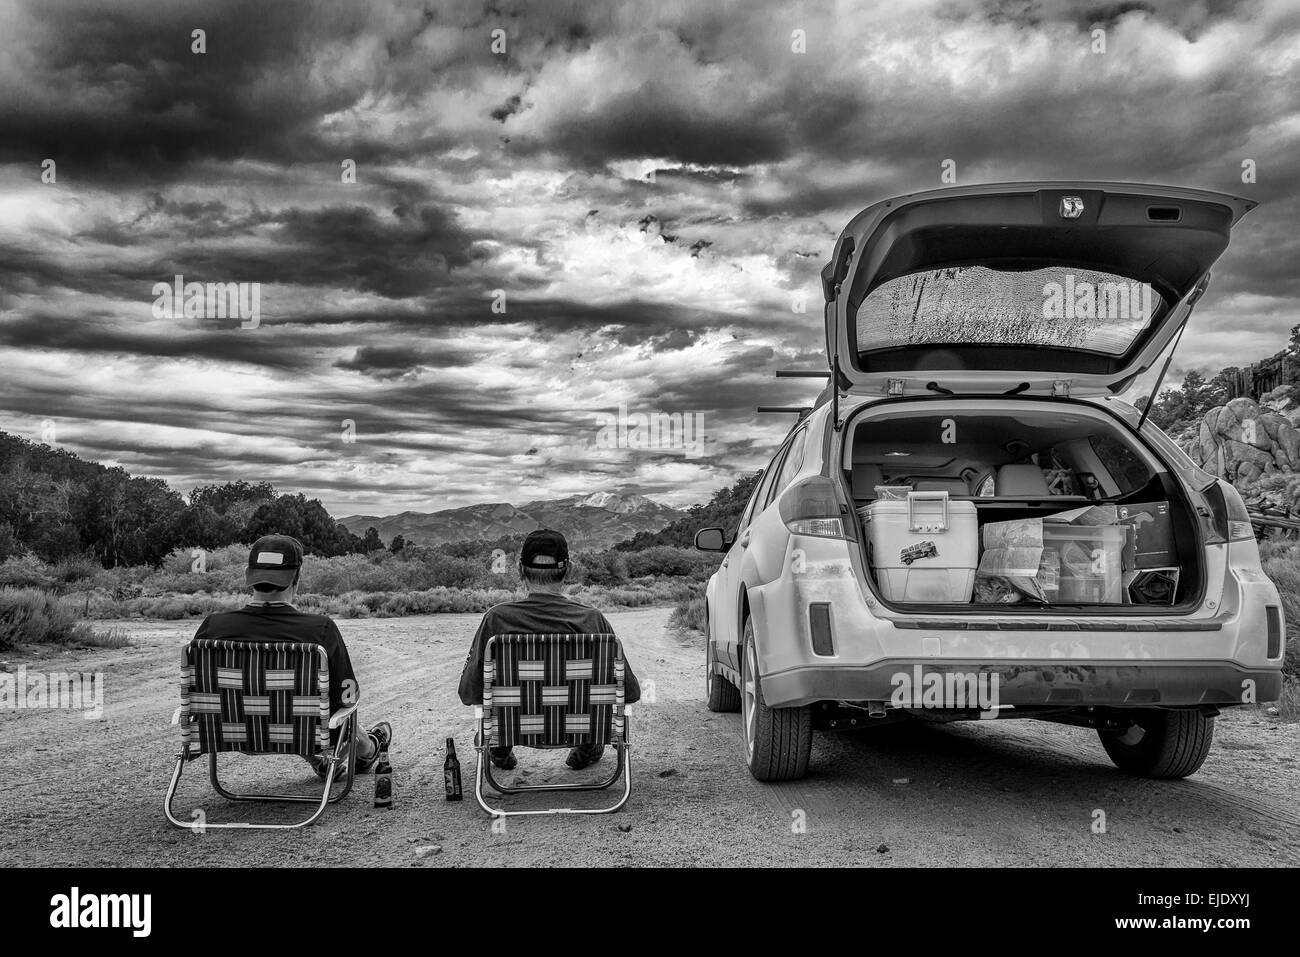 Two men sitting next to a Subaru Outback in black and white Stock Photo